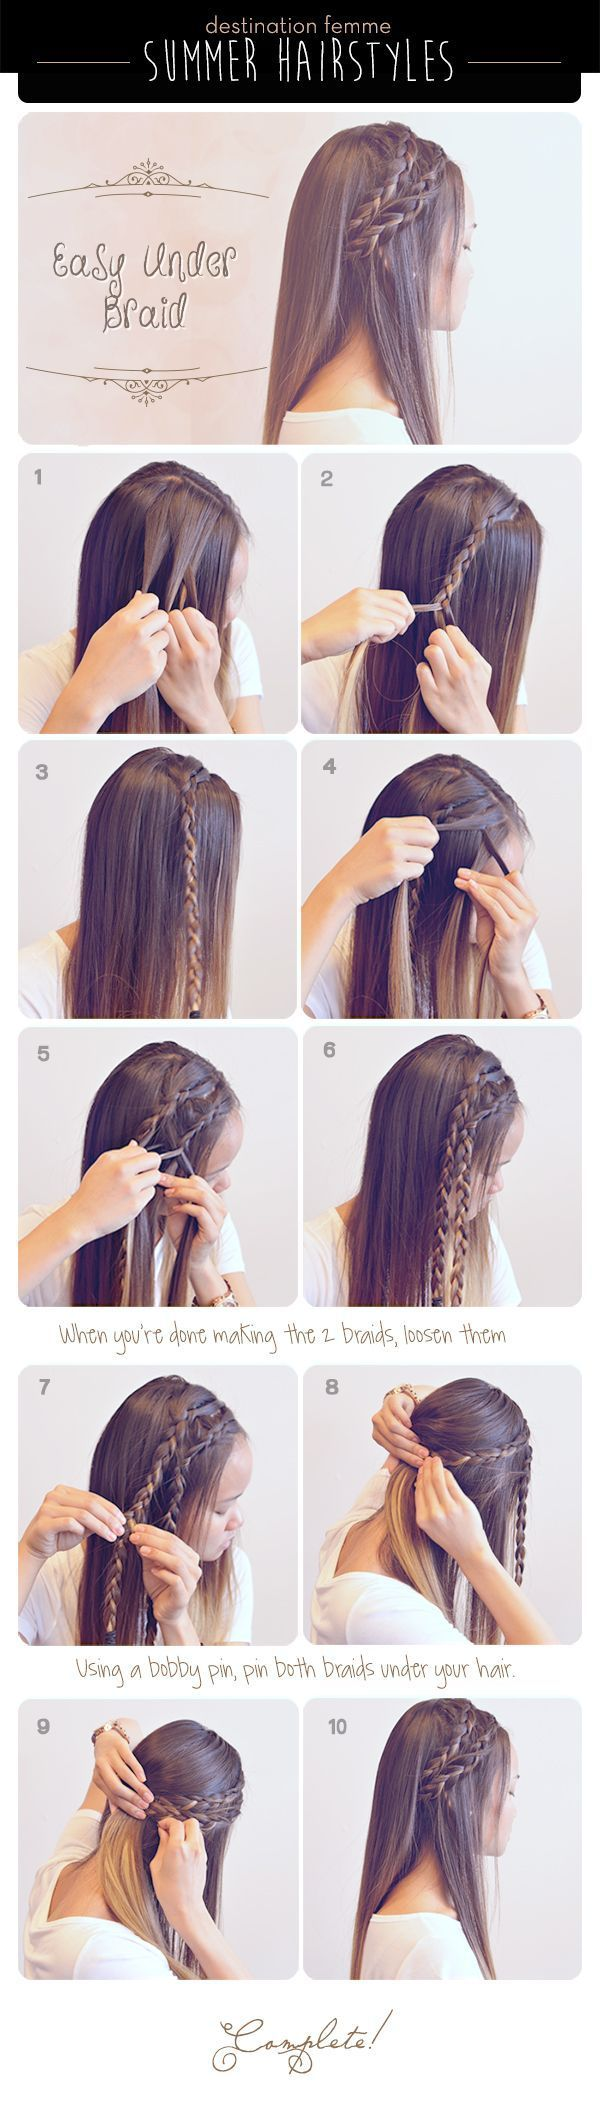 3 Cute & Easy Braided Hairdos for Summer – Destination Femme